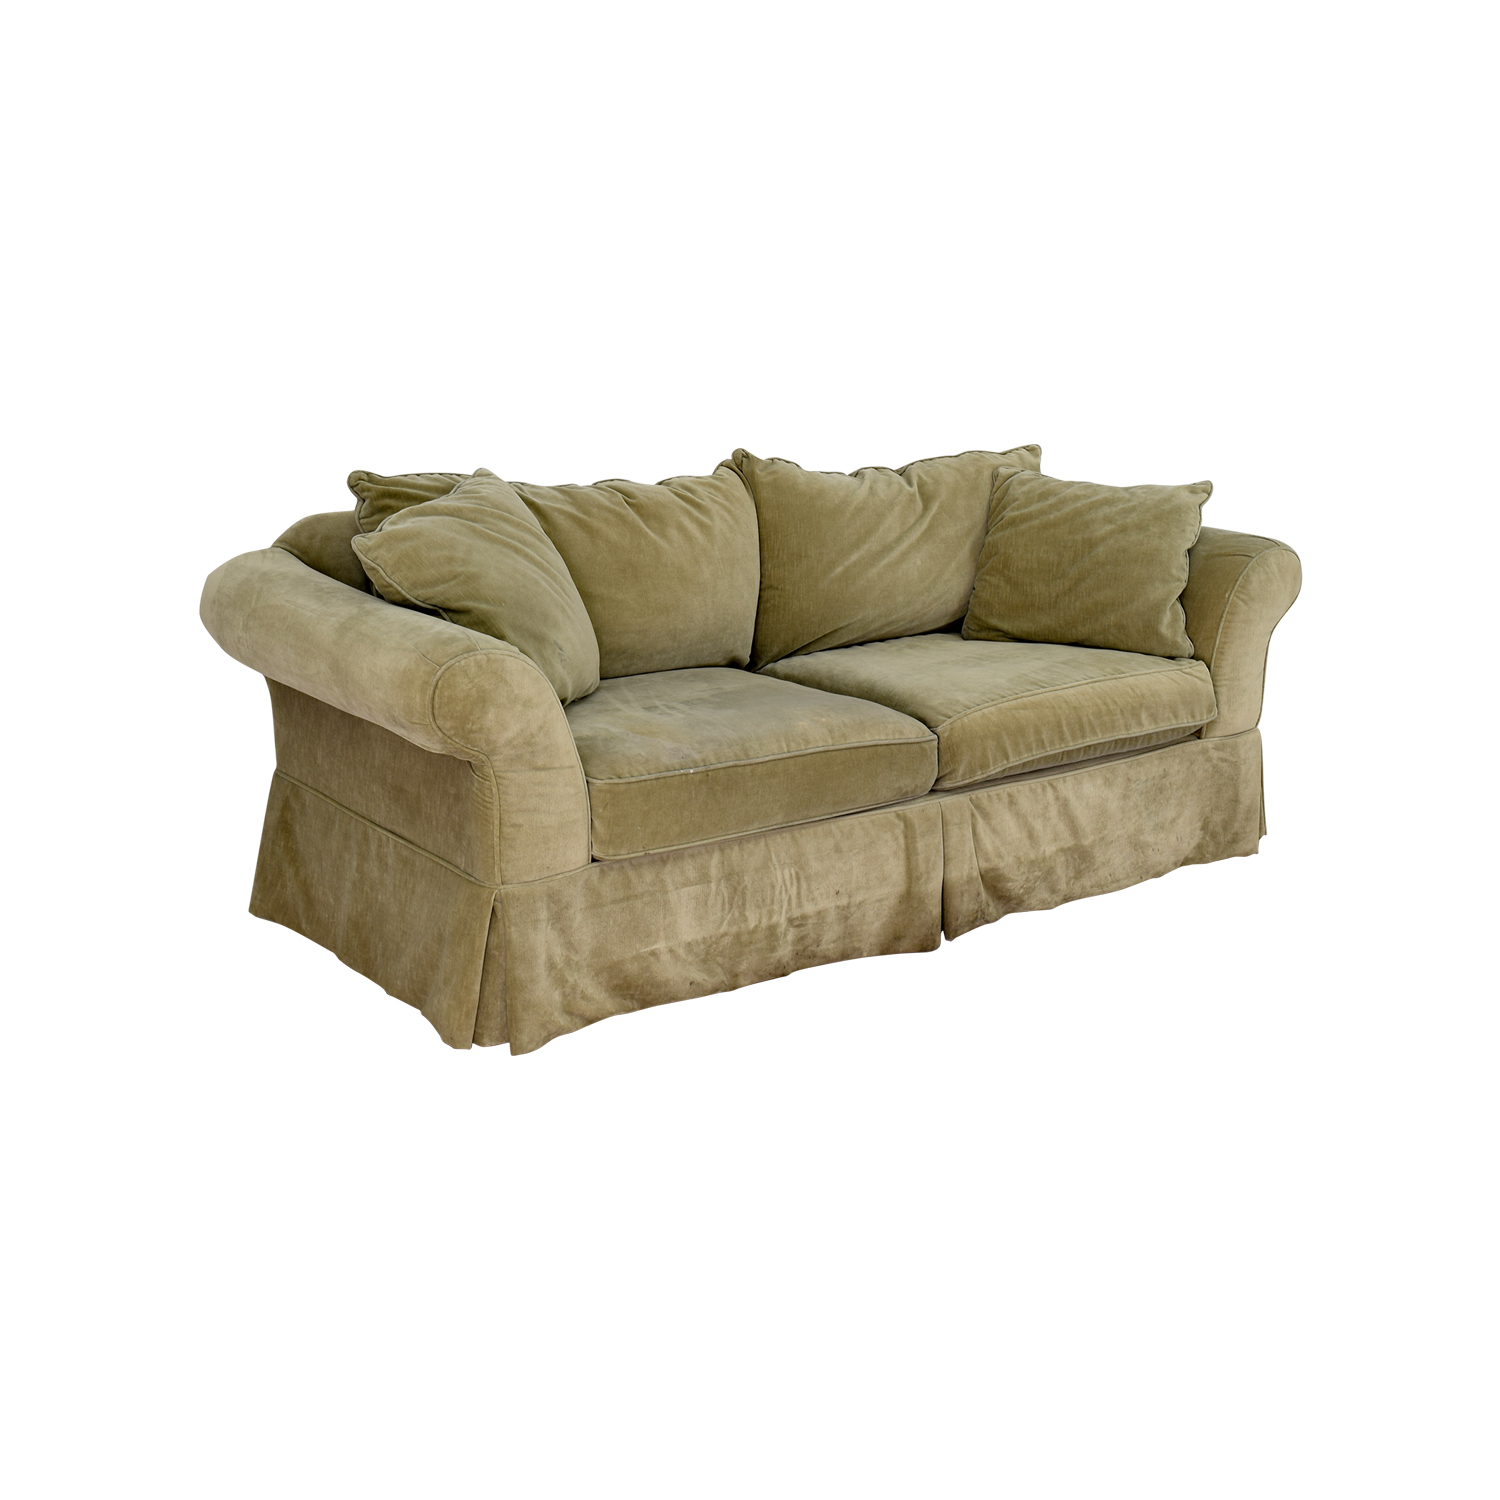 90 off domain domain green skirted couch sofas. Black Bedroom Furniture Sets. Home Design Ideas